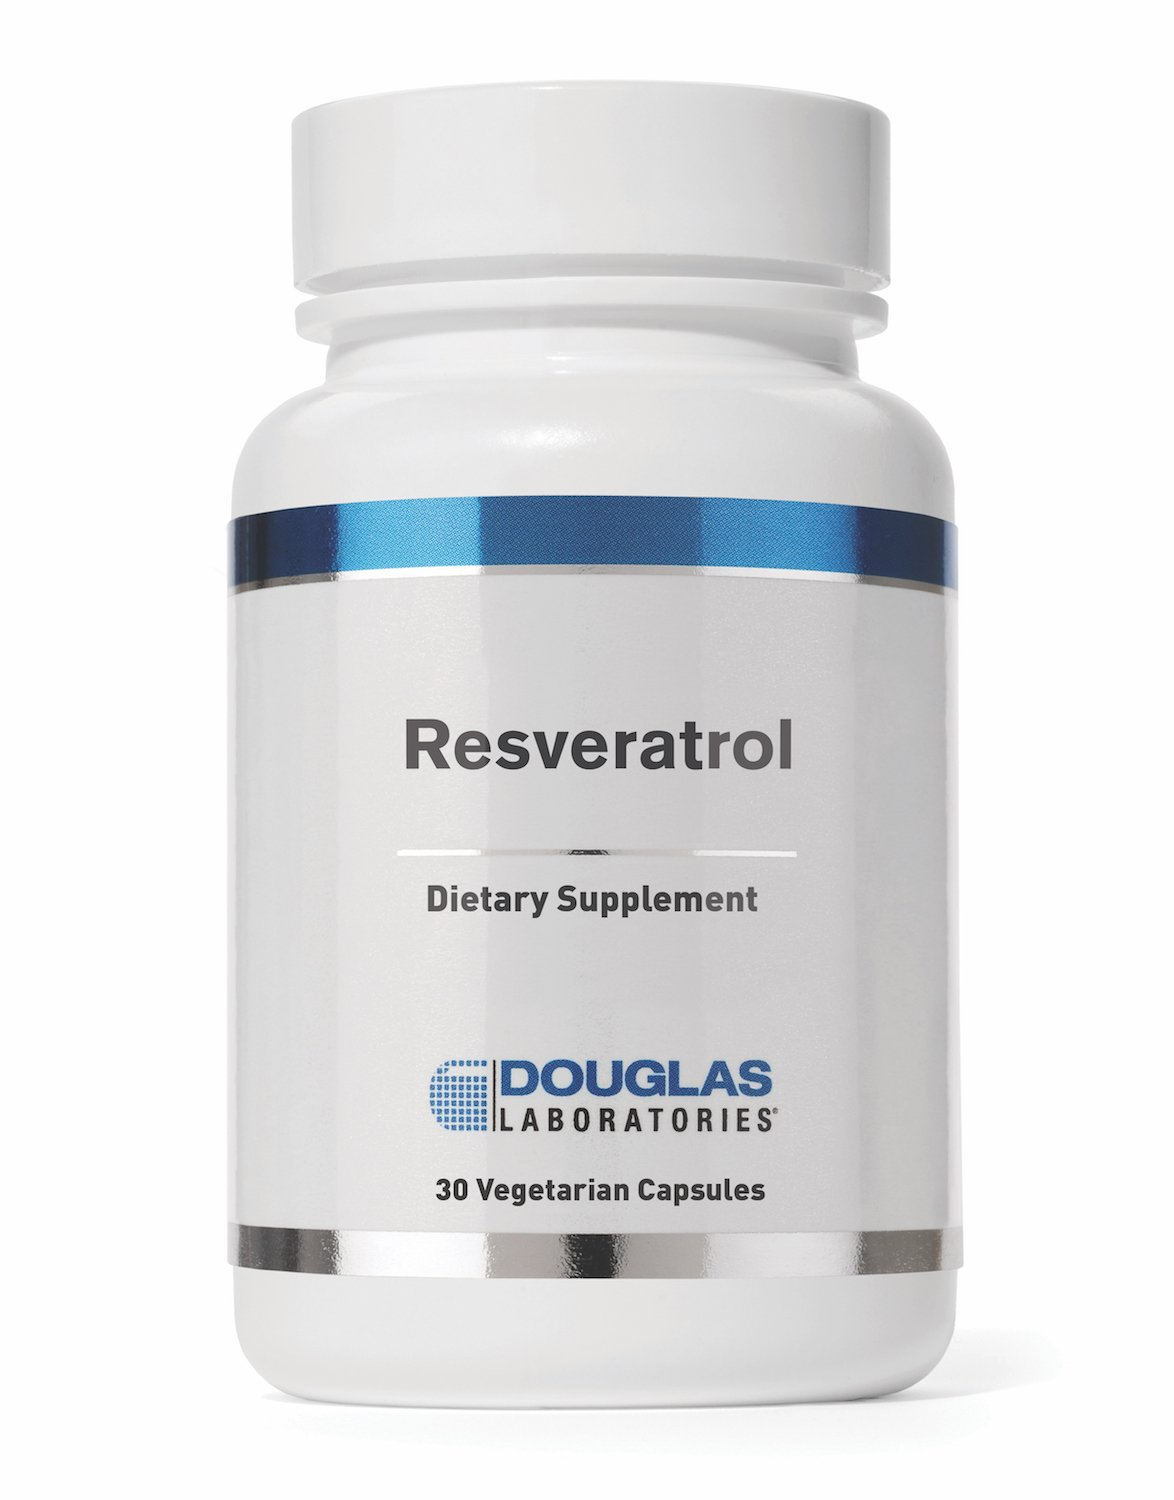 Douglas Laboratories - Resveratrol - Antioxidant Support for Cardiovascular, Neurological, Metabolic and Mitochondrial Health* - 30 Capsules